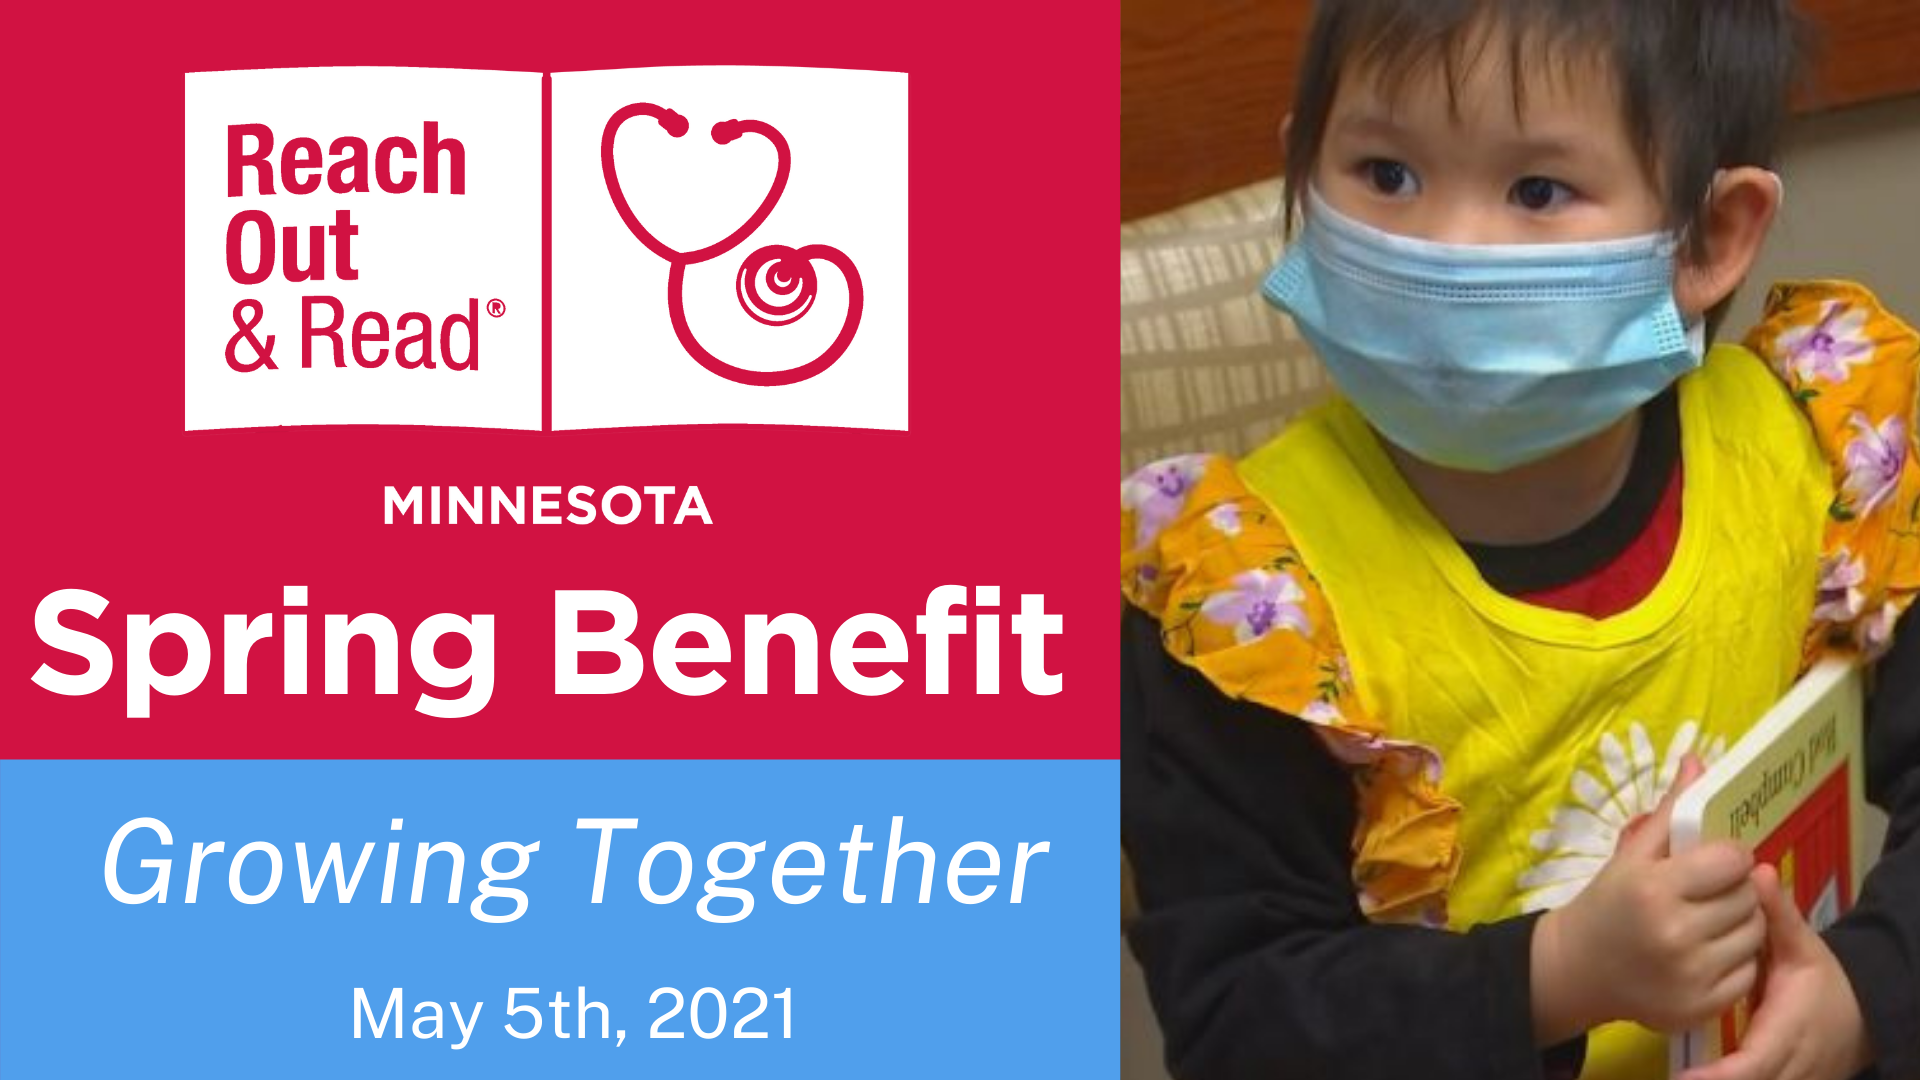 Growing Together: Our 10th Annual Spring Benefit